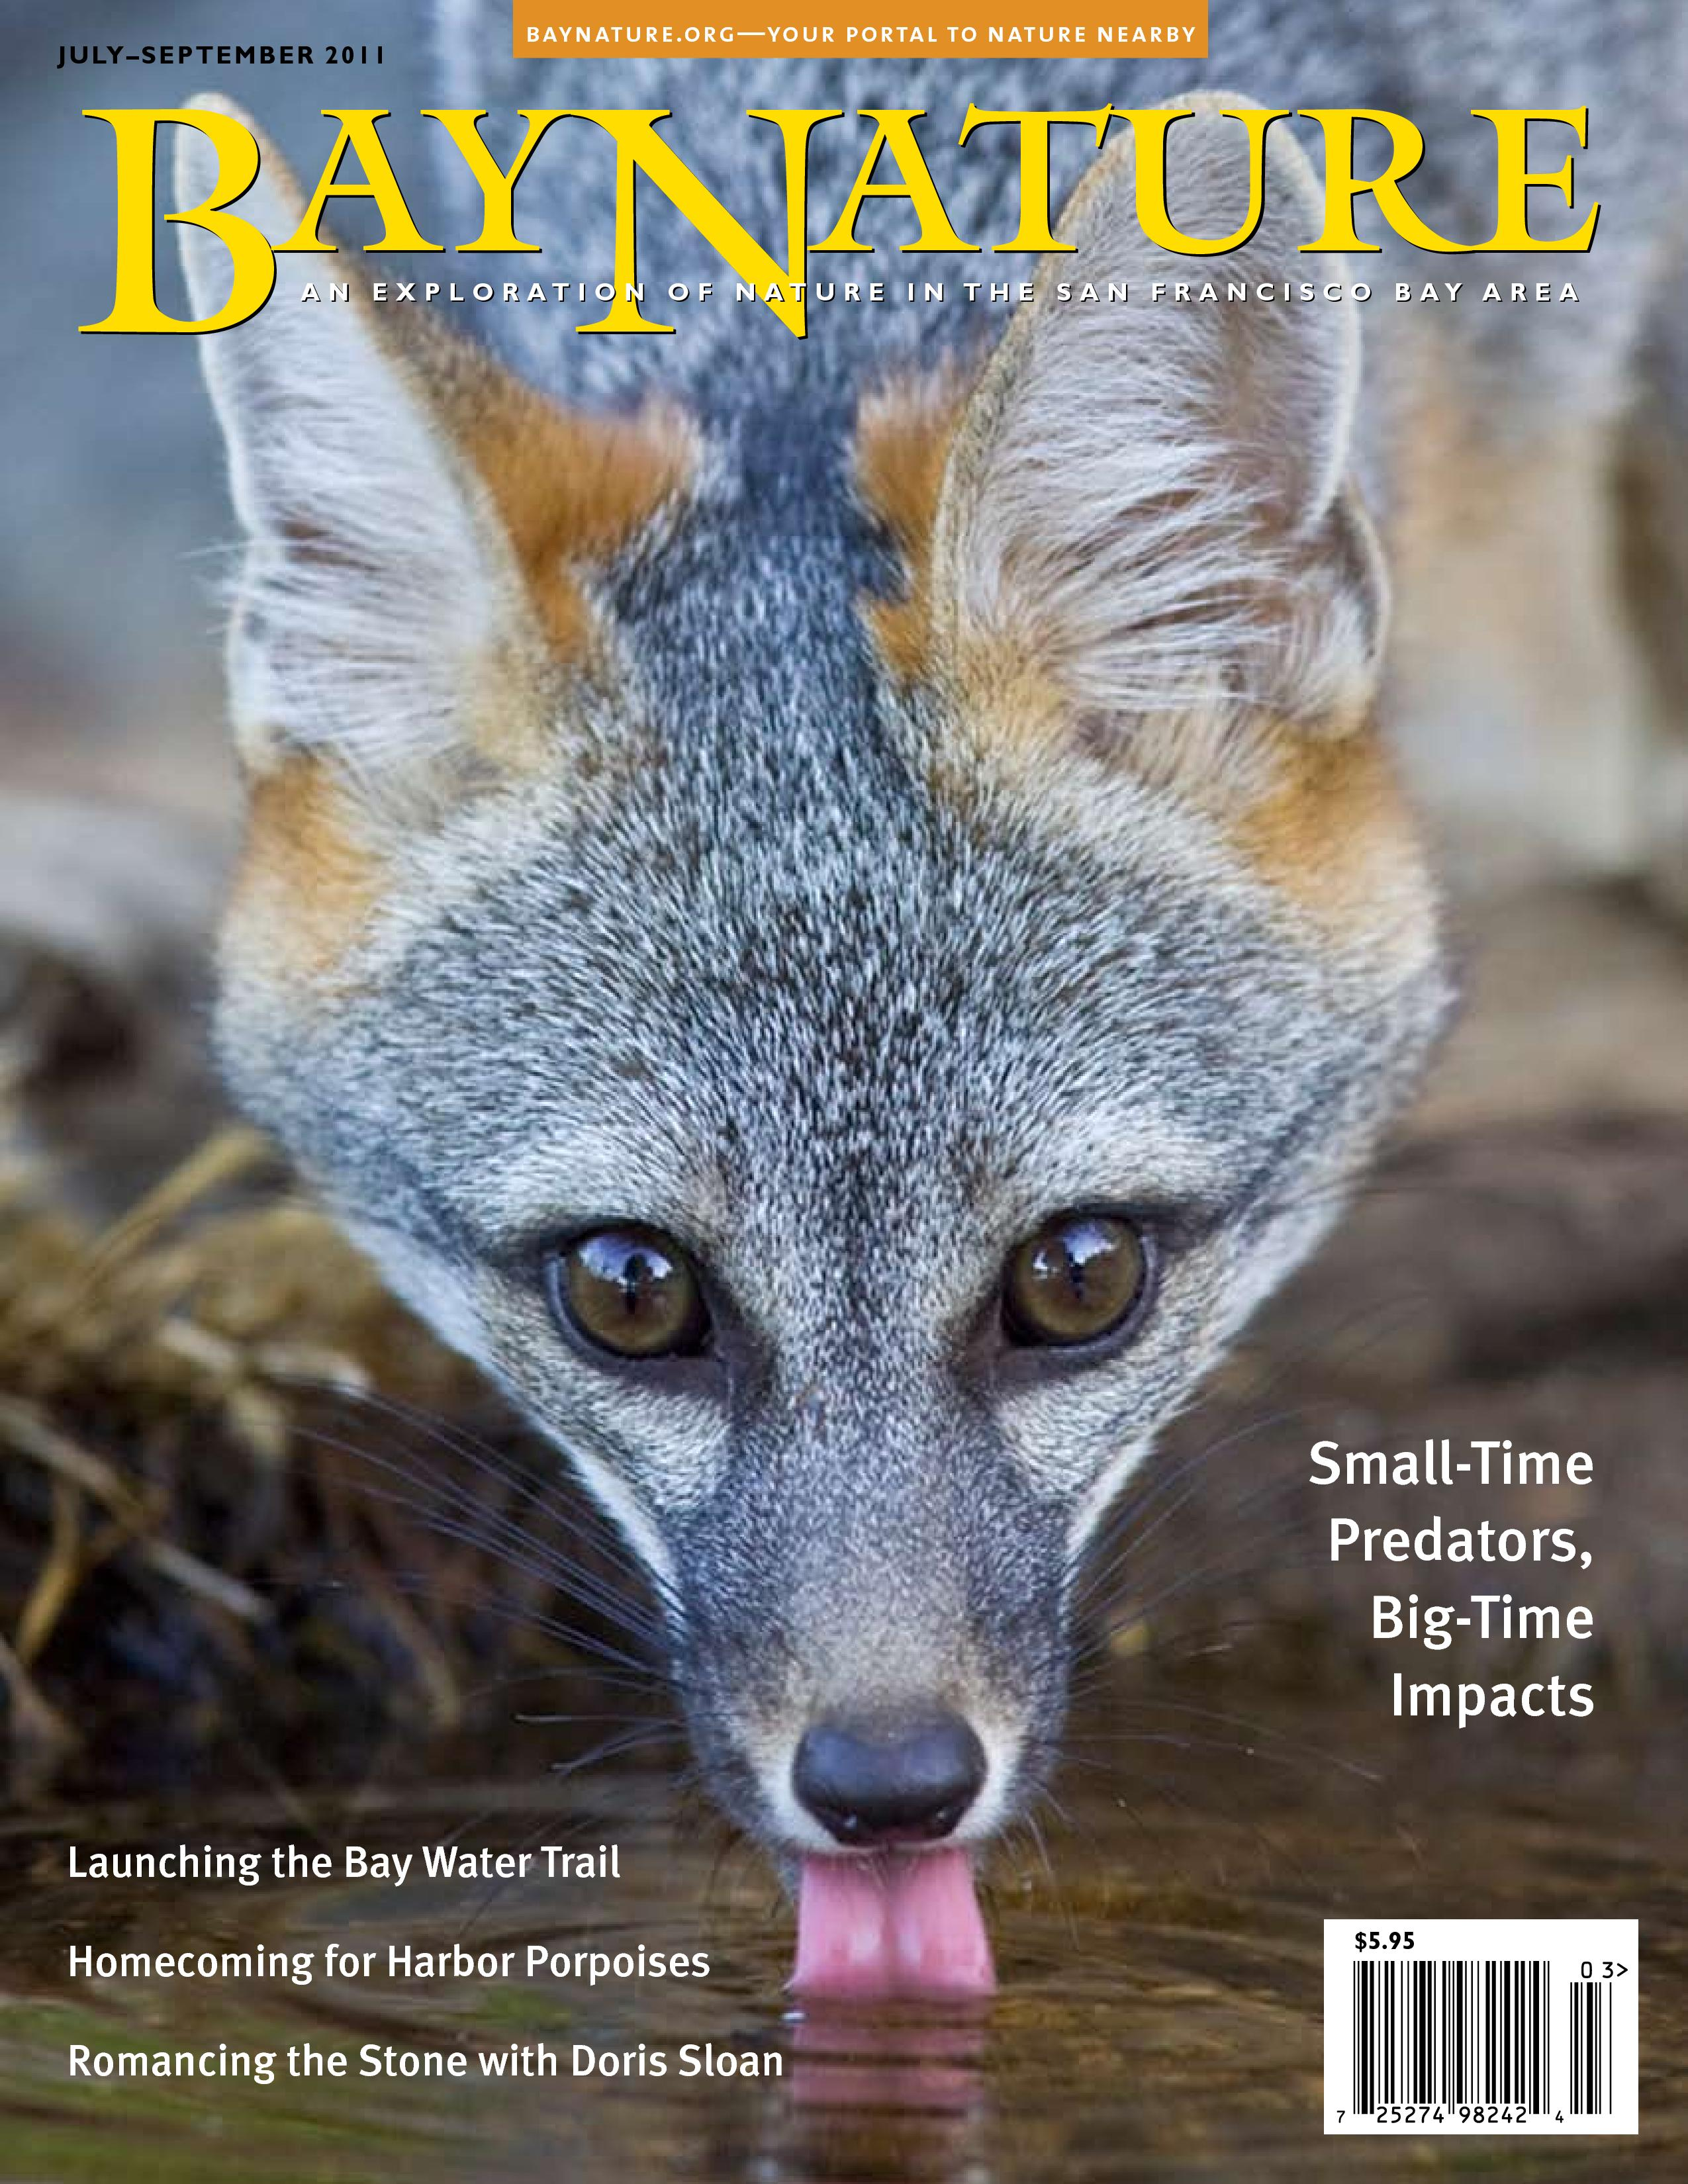 bay nature cover u2013 dream catcher images by bruce finocchio